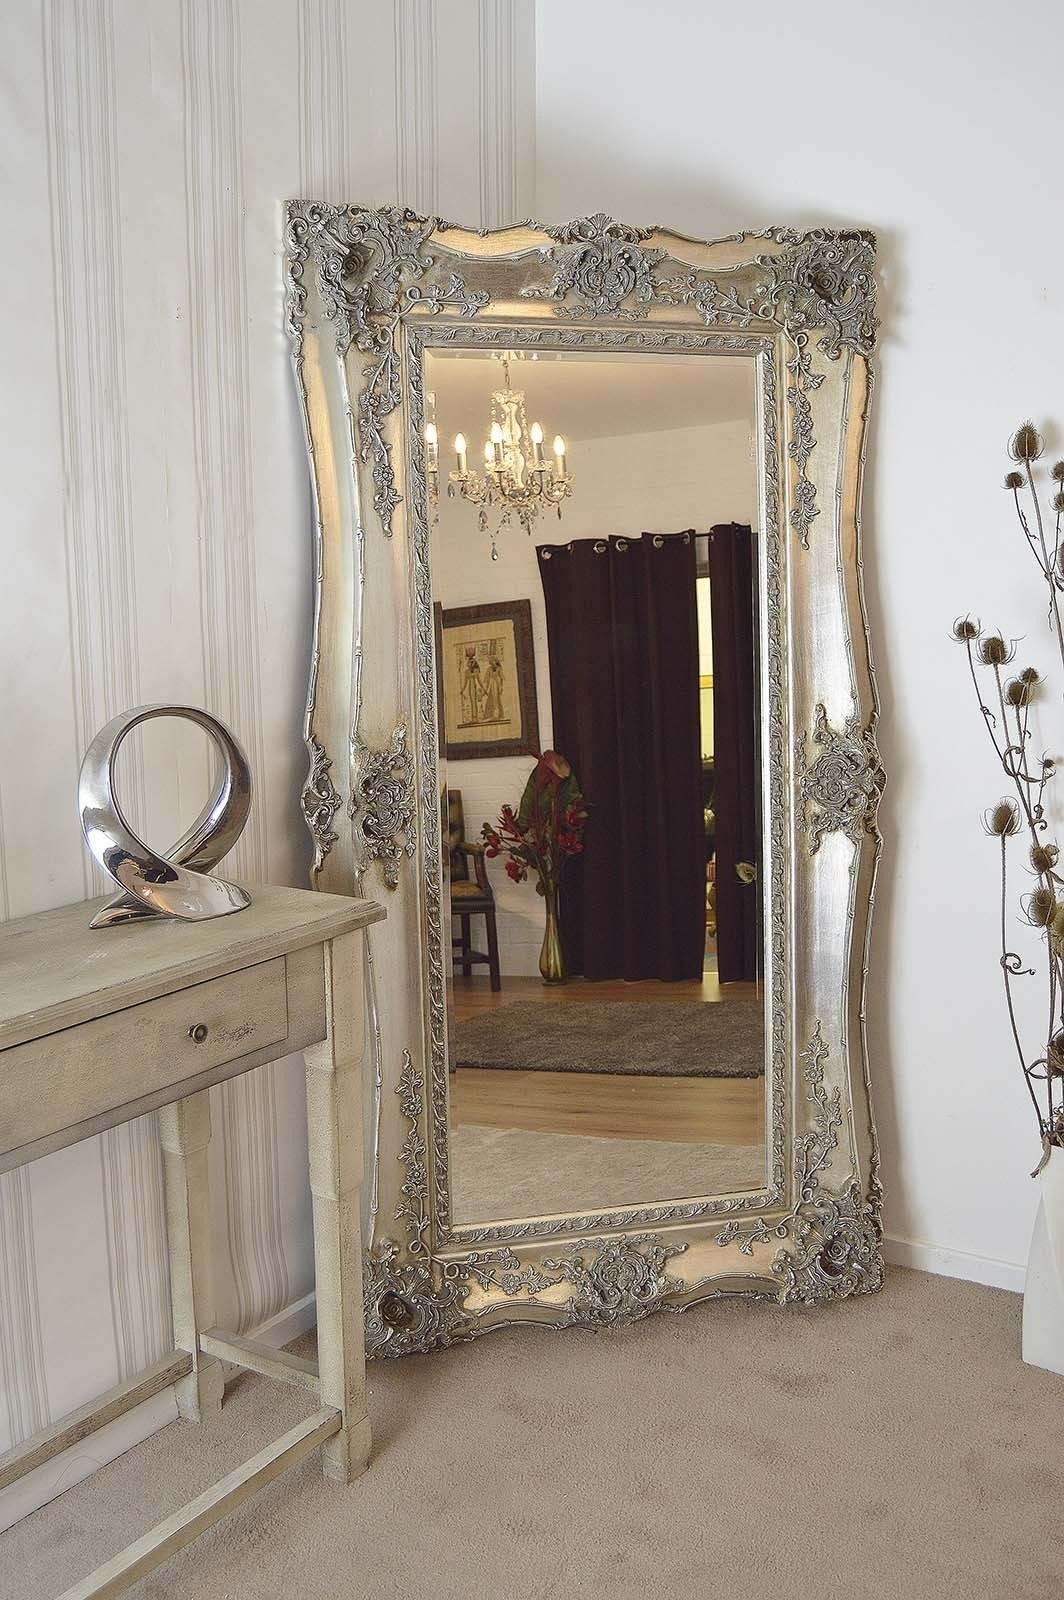 Bedroom Furniture Large Gold Mirror Free Standing Mirror Wooden Pertaining To Free Standing Mirrors For Sale (Image 6 of 15)